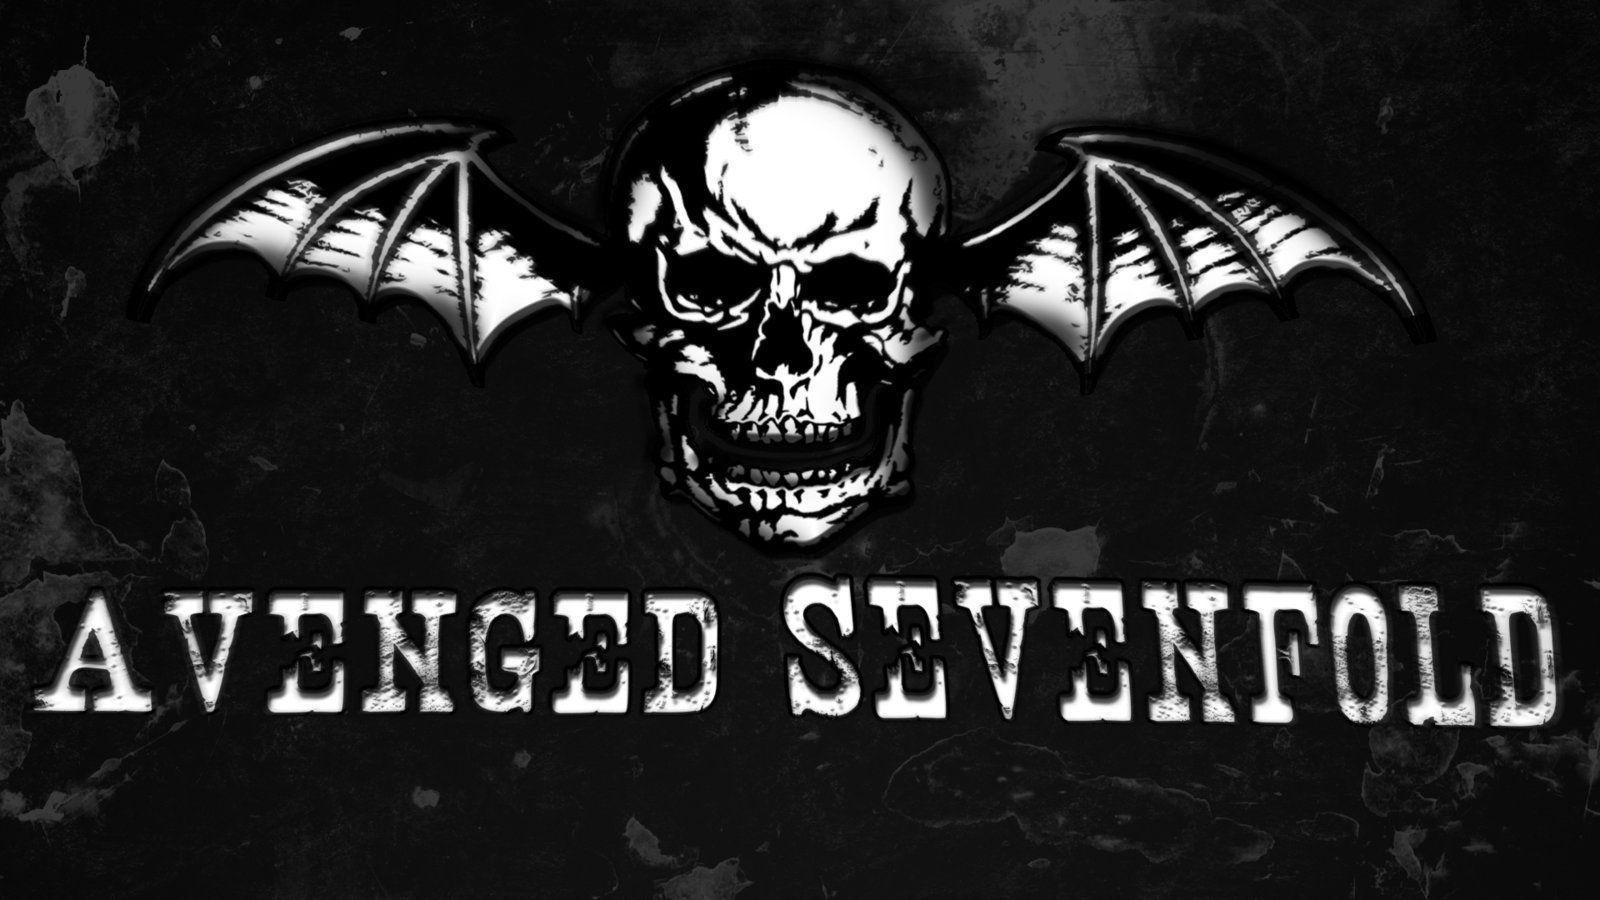 Avenged sevenfold wallpapers wallpaper cave hail to the king avenged sevenfold wallpaper by chaotichazard on voltagebd